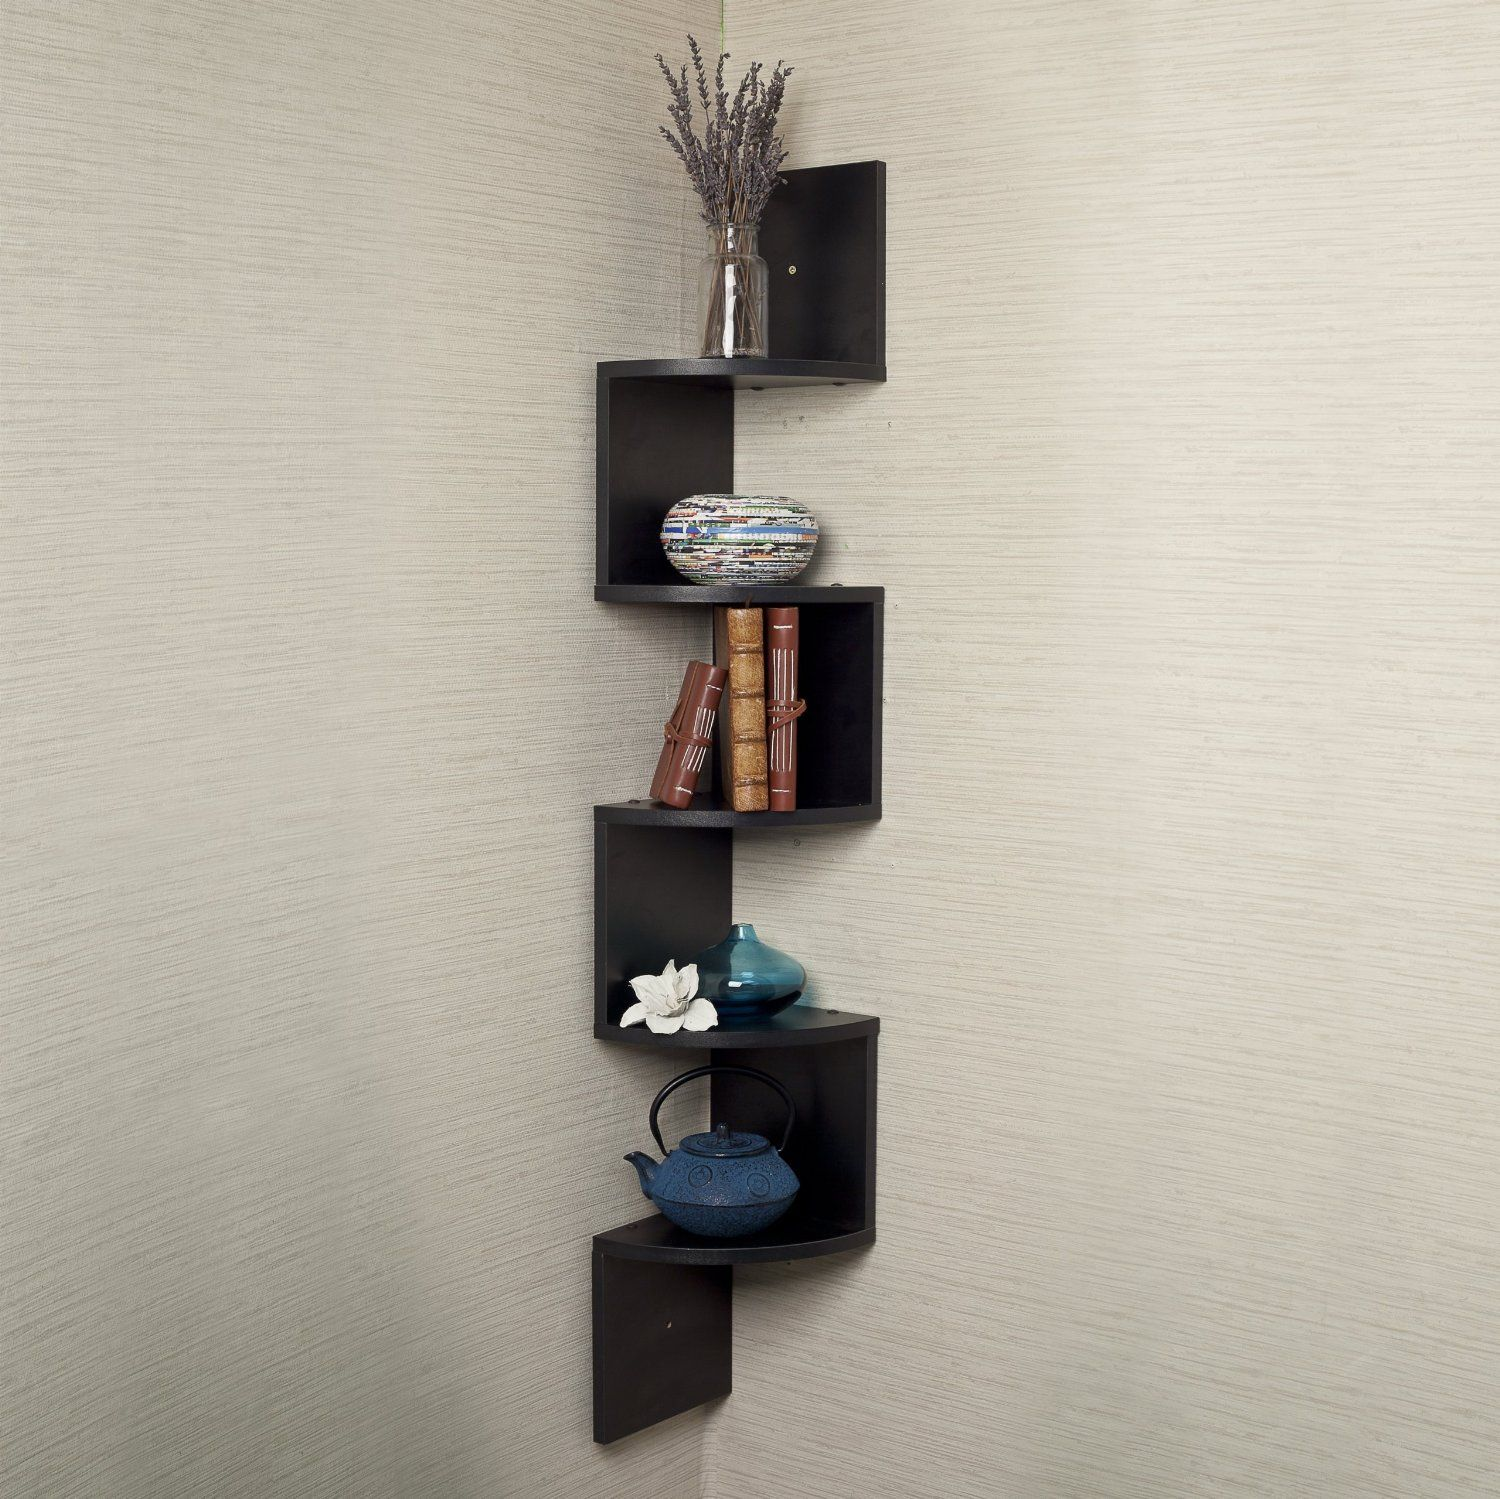 Ordinaire Danya B. Large Corner Wall Mount Shelf Black Laminate | Living Room  Interior Design | Pinterest | Corner Wall, Wall Mounted Shelves And Mounted  Shelves